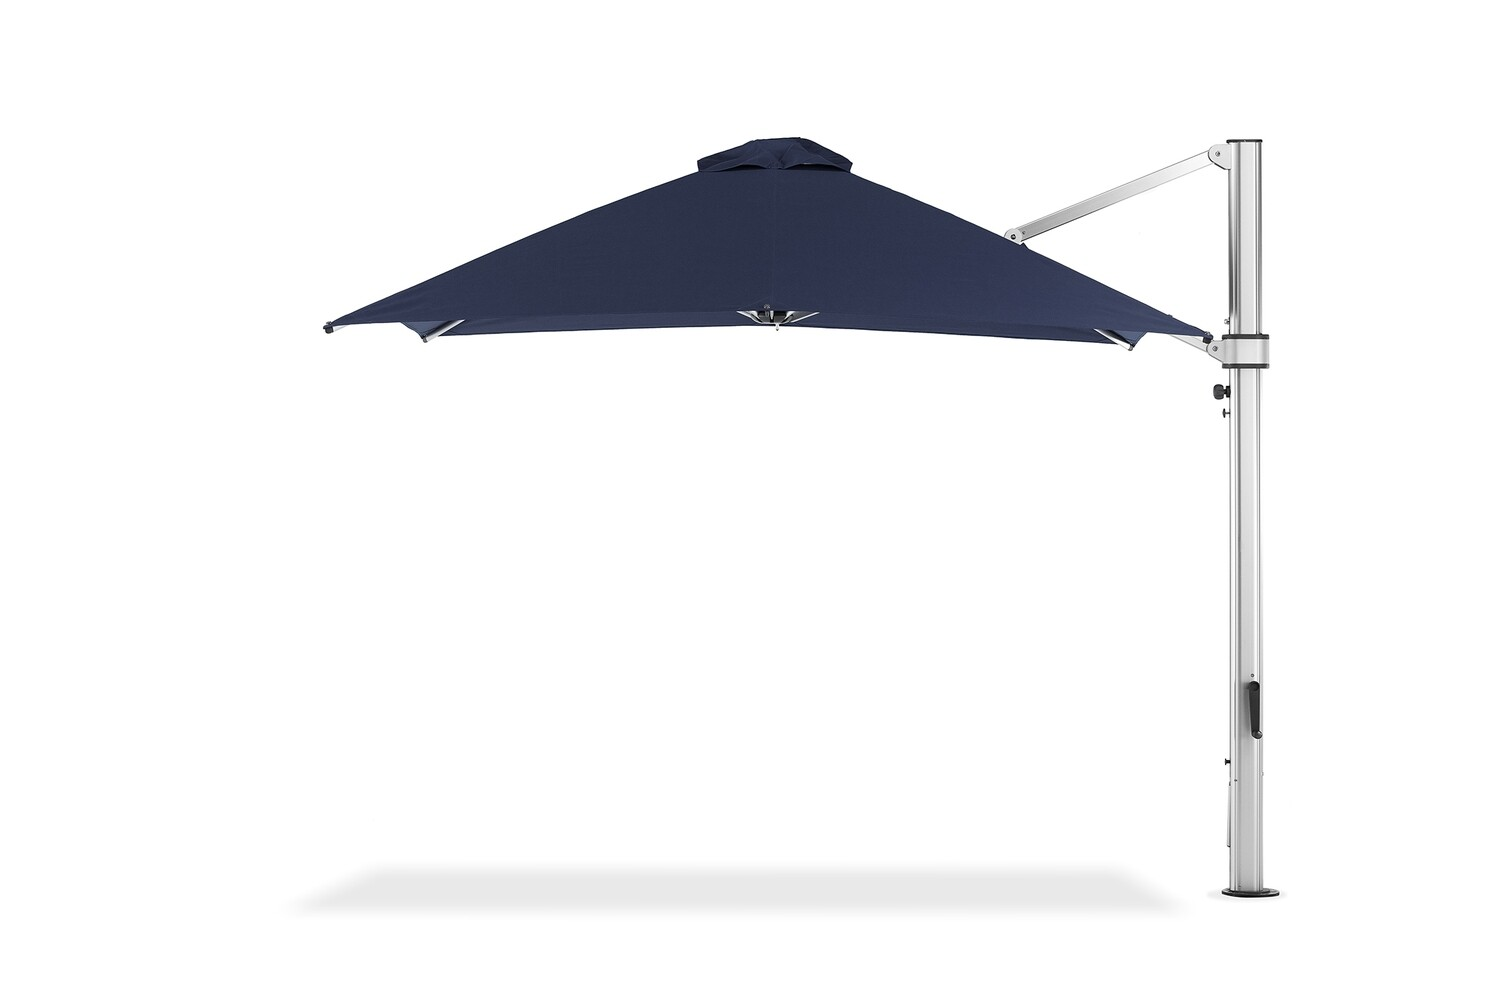 Elaine's Eclipse Cantilever Umbrella with In Ground Mounting System